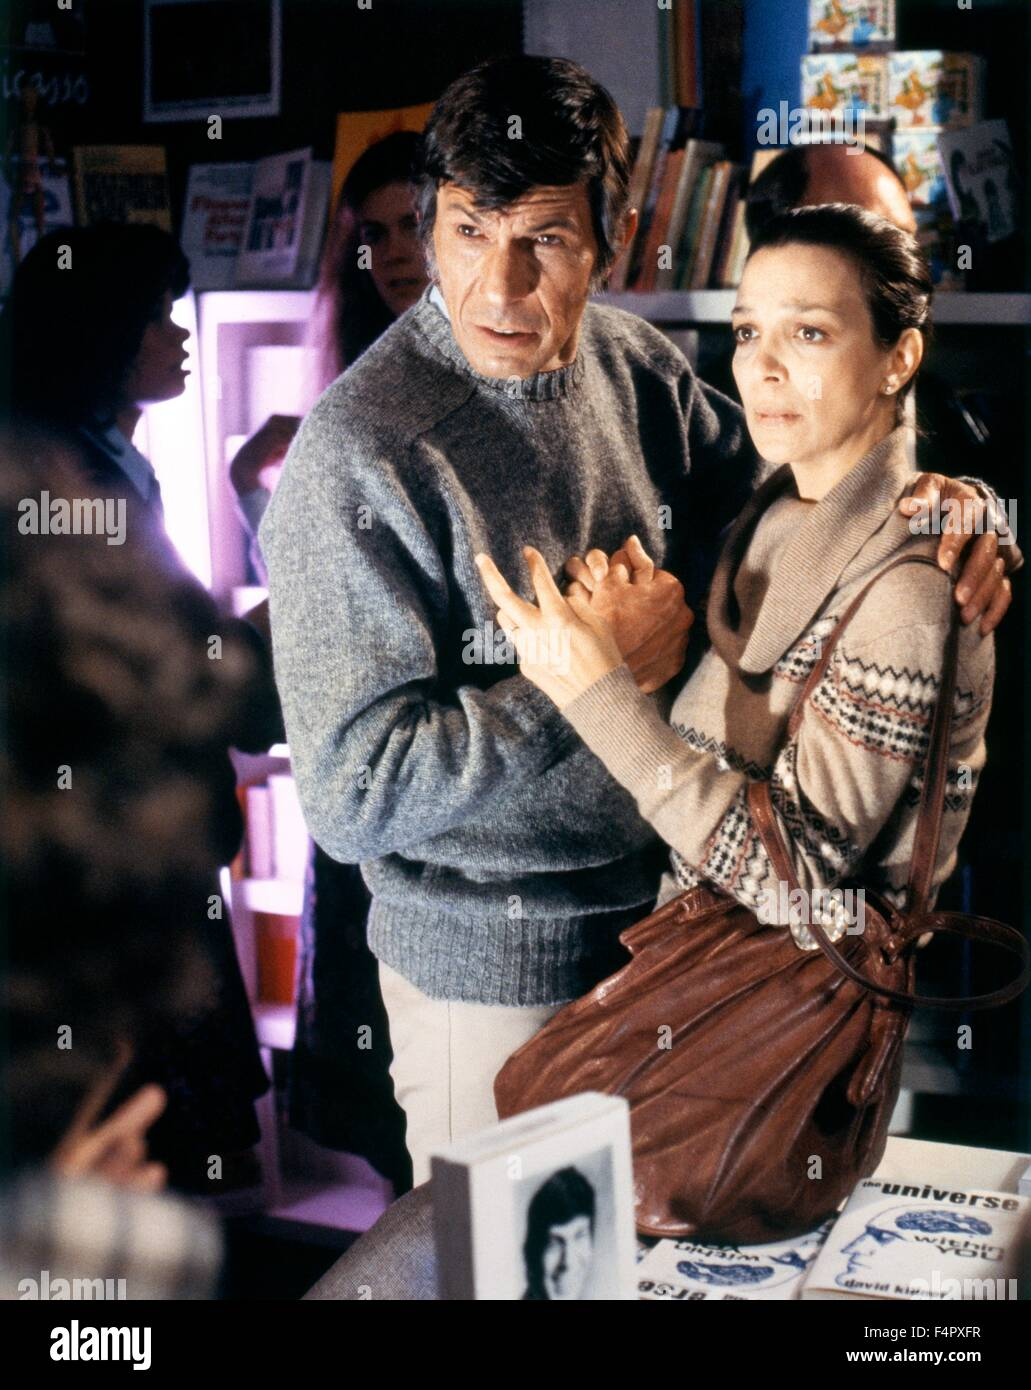 Leonard Nimoy and Lelia Goldoni / Invasion Of The Body Snatchers / 1978 / Directed By Philip Kaufman / [United Artists] - Stock Image